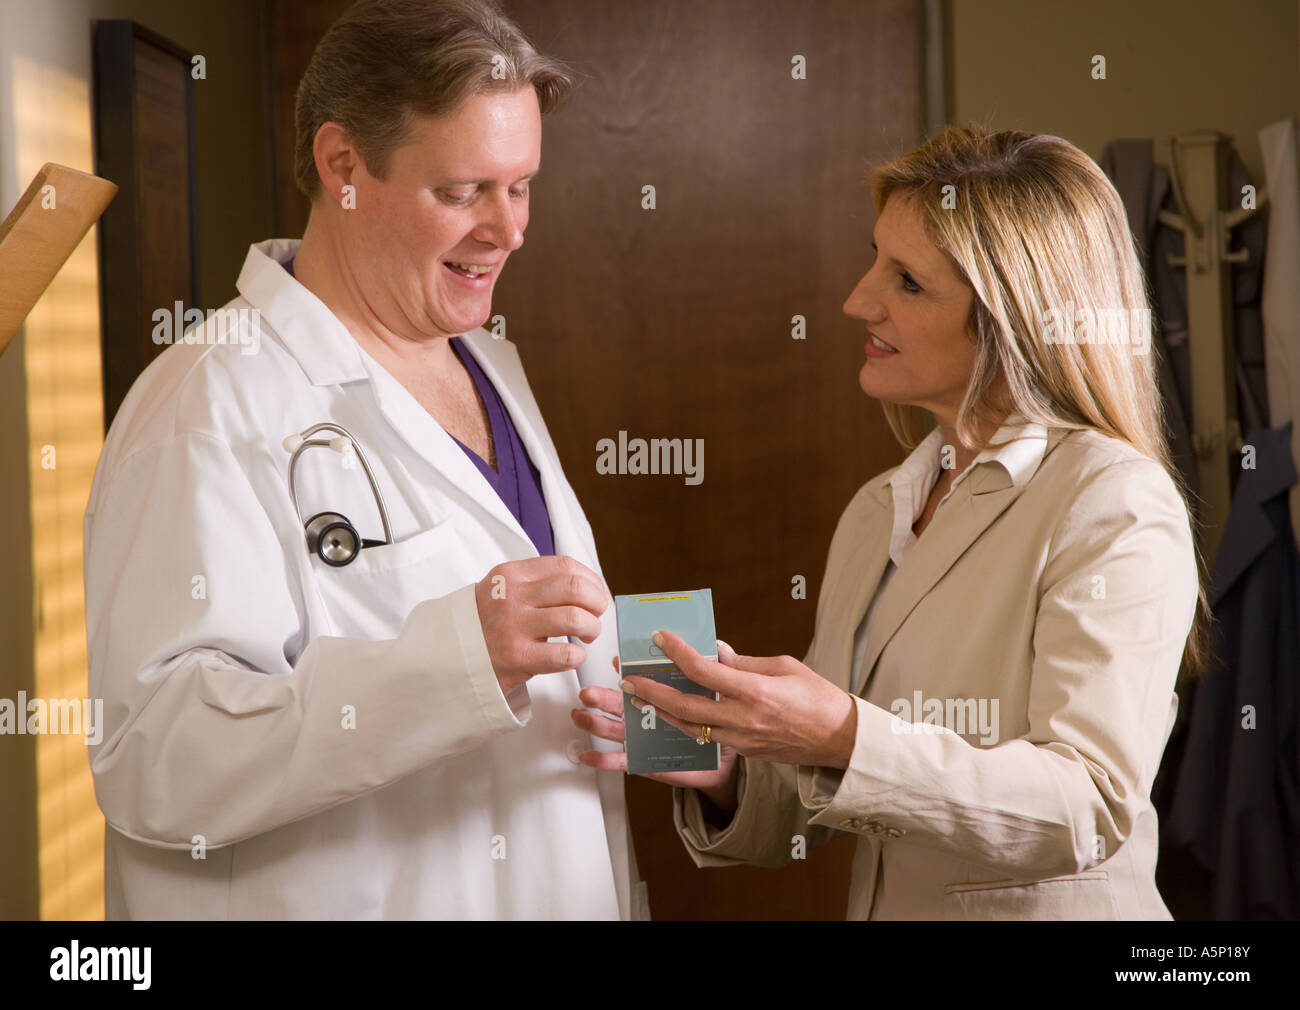 Pharmaceutical Sales Representatives Stock Photos Pharmaceutical